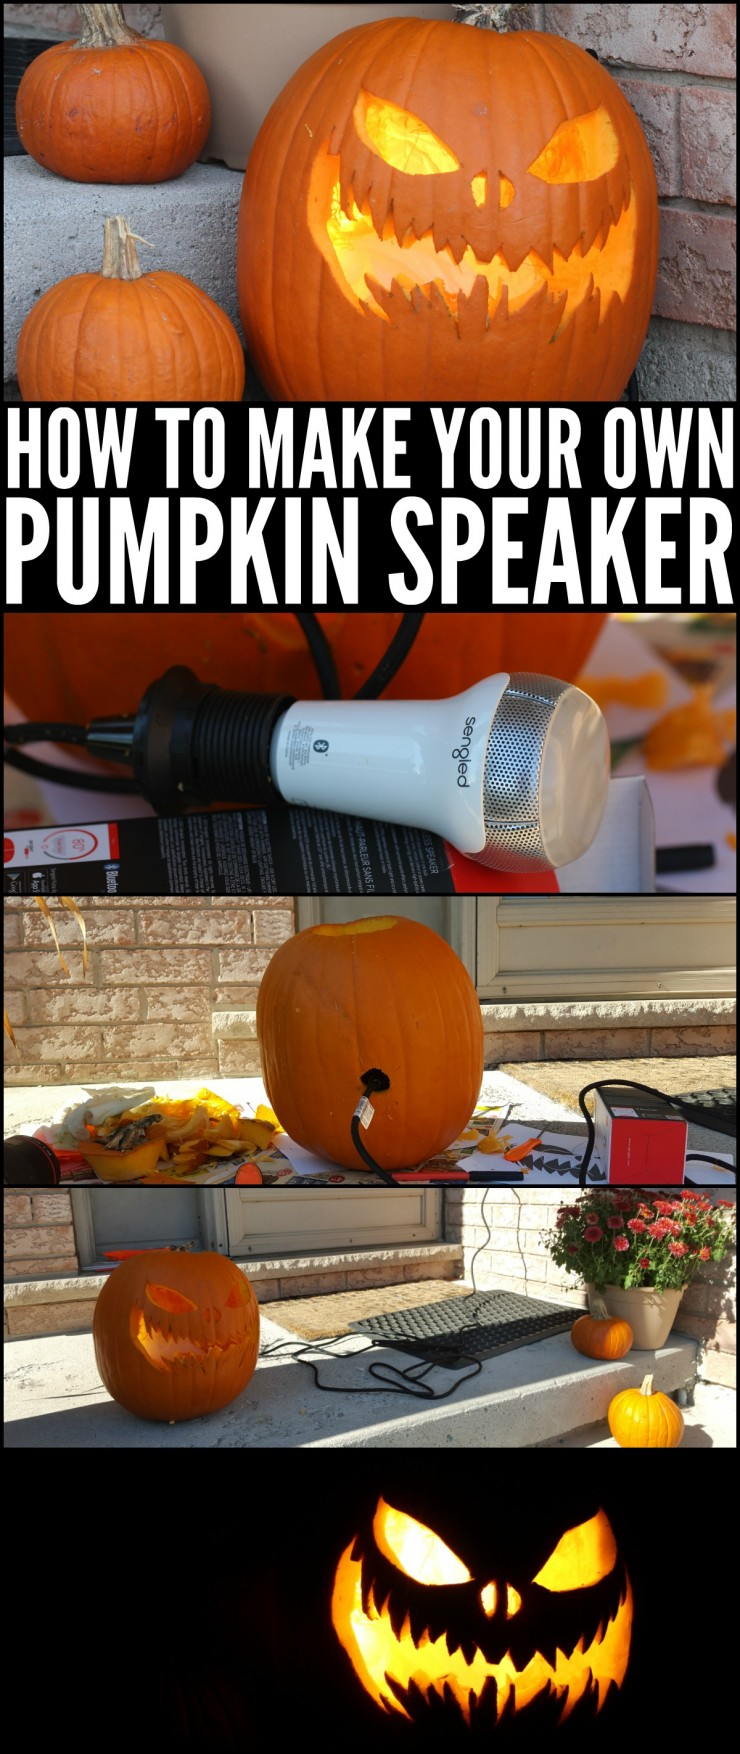 Turn a pumpkin into a spooky pumpkin speaker with this super easy to follow Halloween tutorial. You'll be scaring off ghosts and ghouls in no time with this Halloween decor idea!